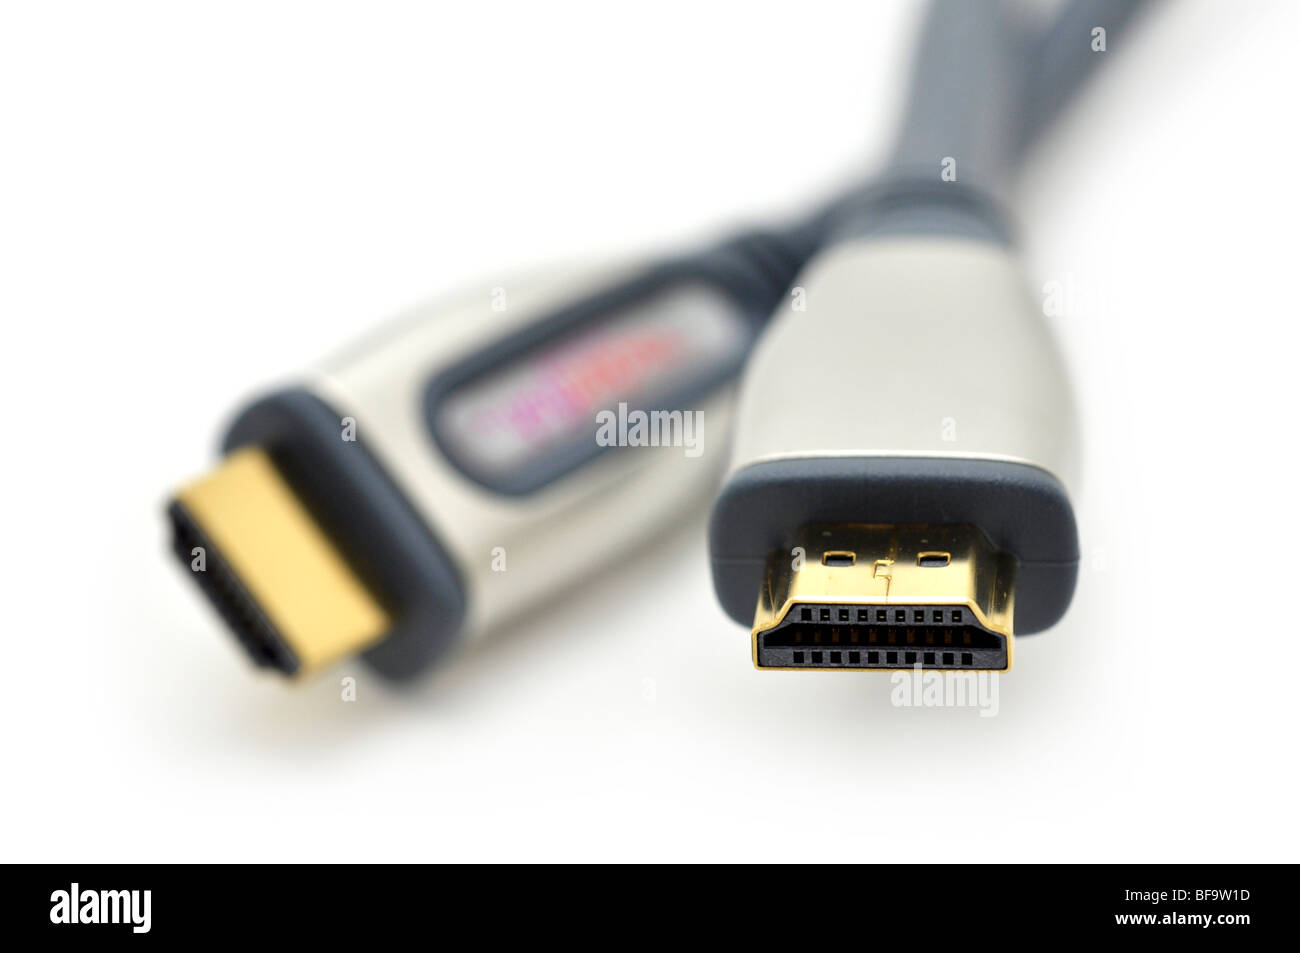 HDMI (High-Definition Media Interface)-Kabel-Anschlüsse Stockfoto